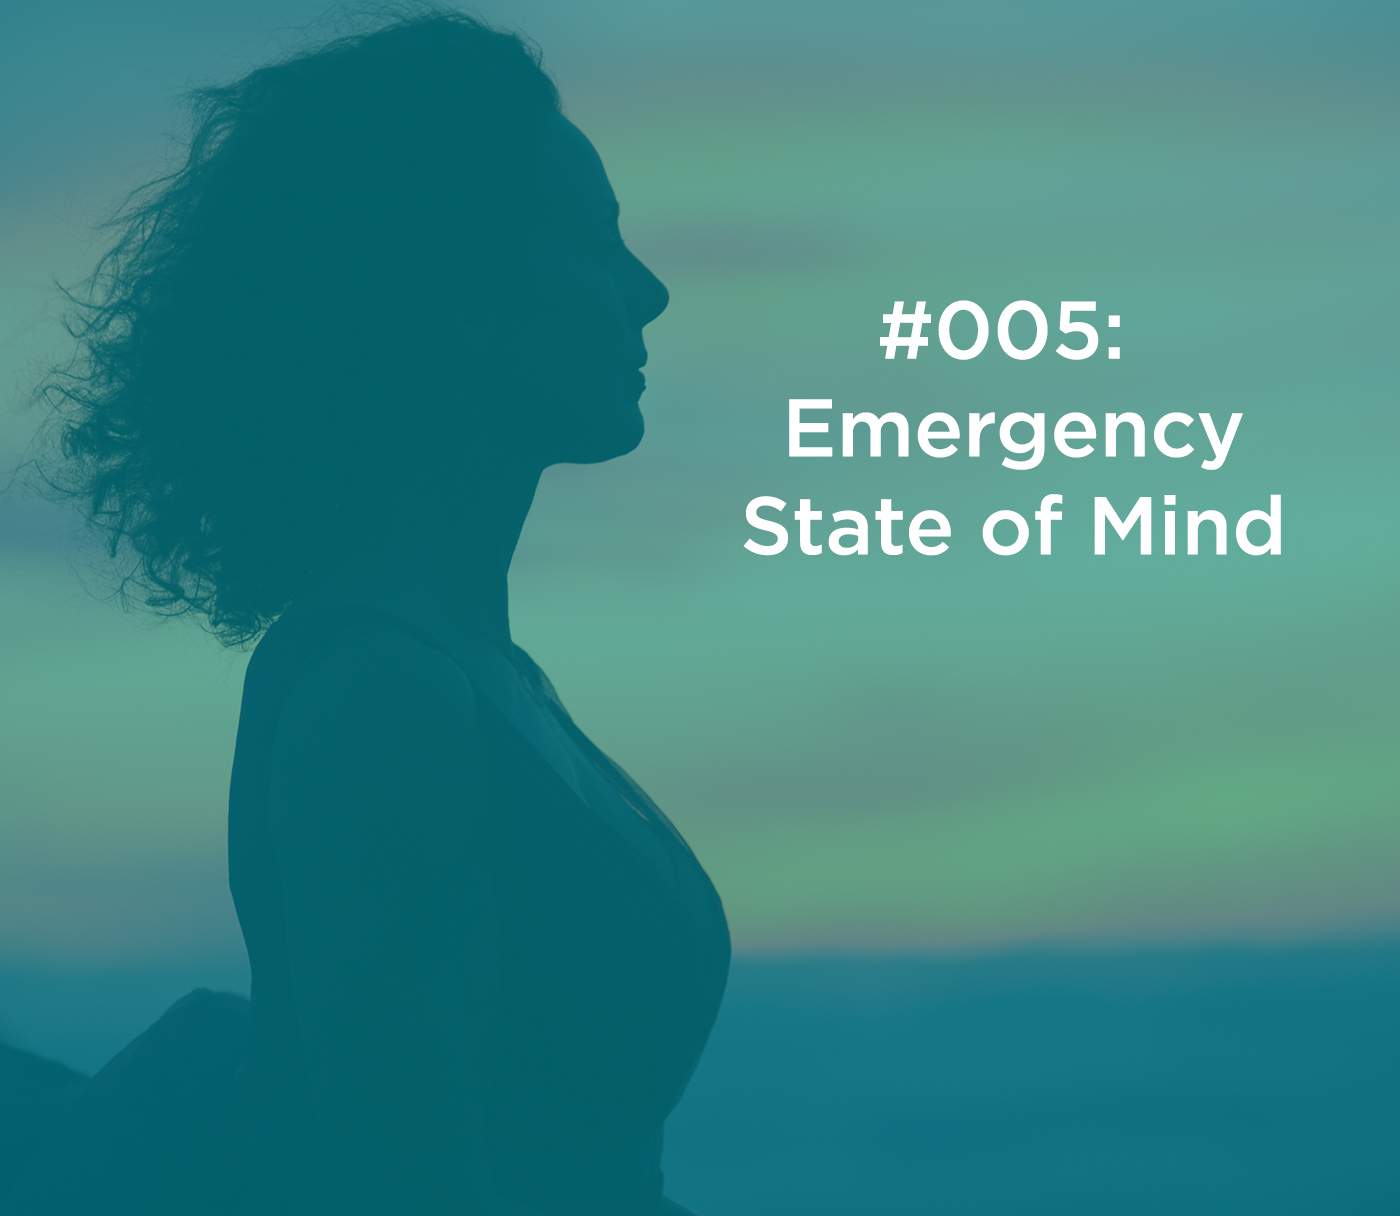 Emergency State of Mind